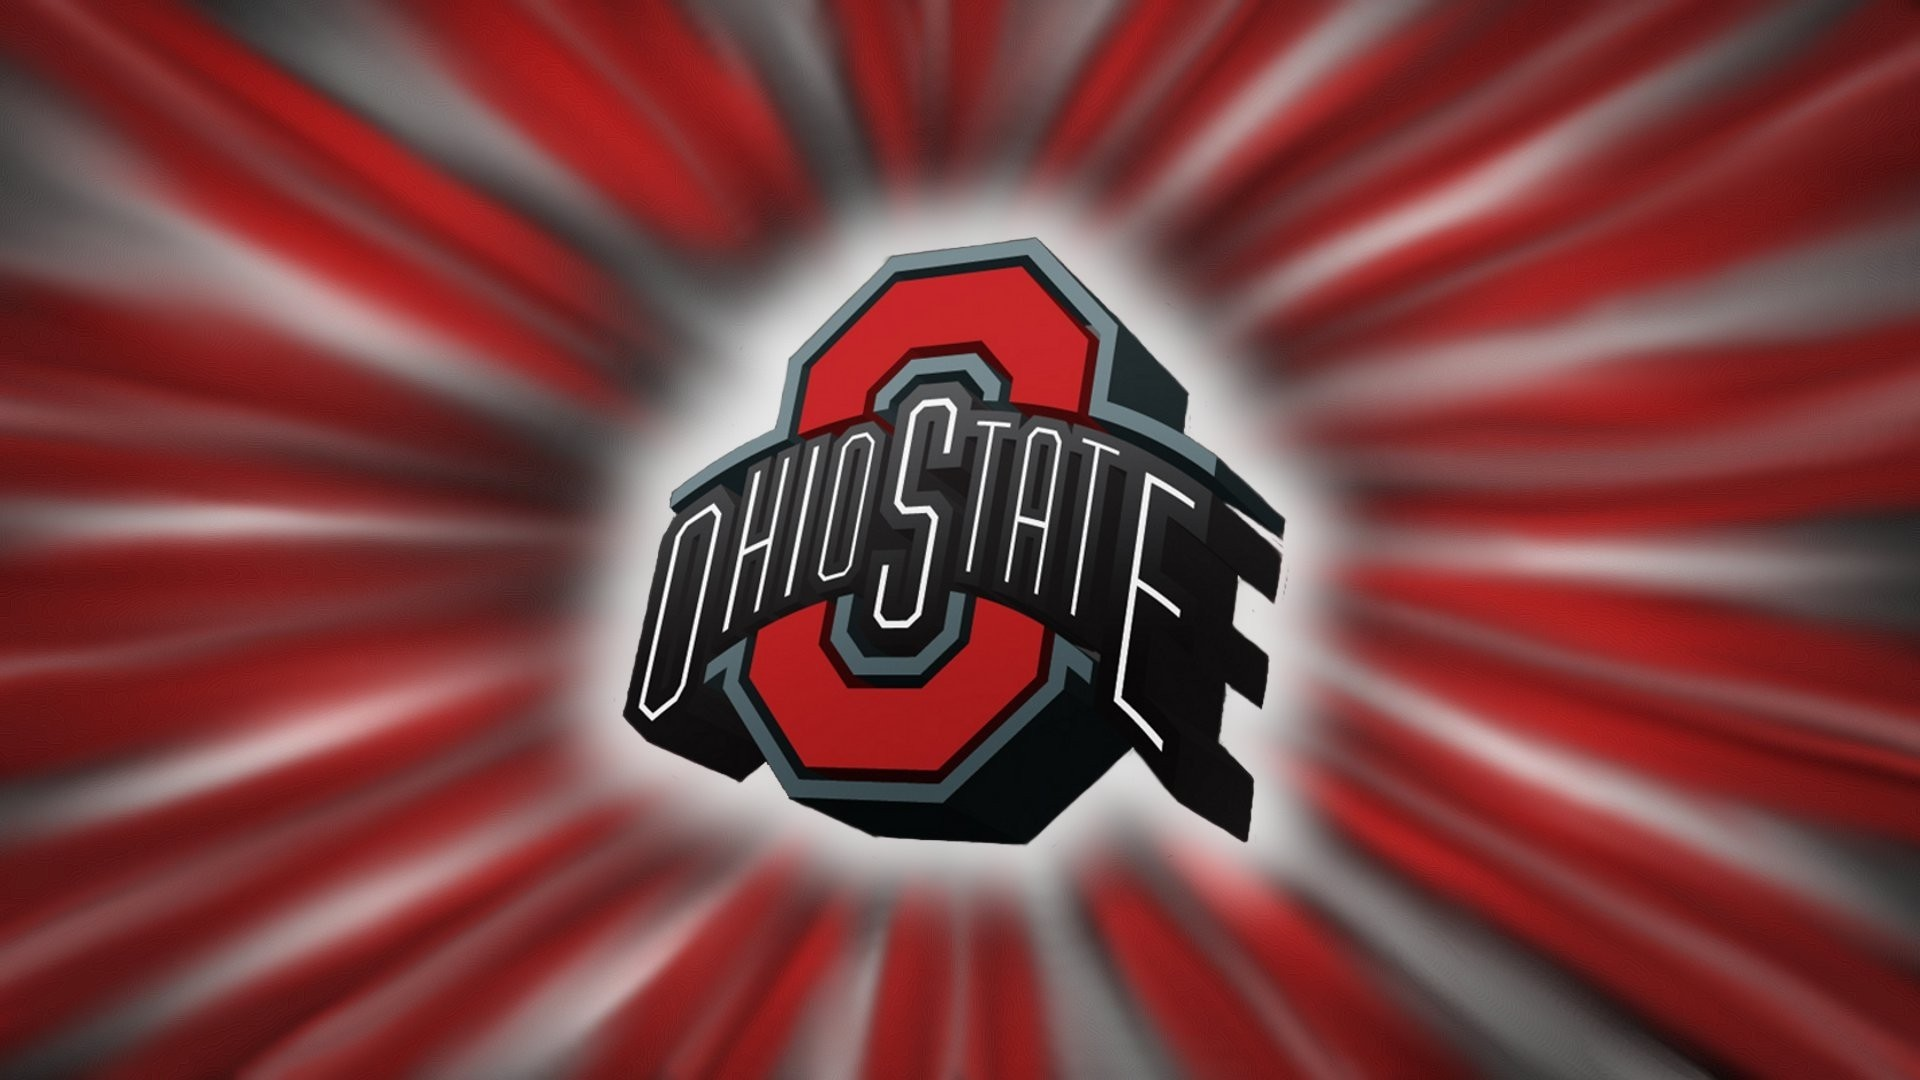 Ohio State Wallpaper for pc